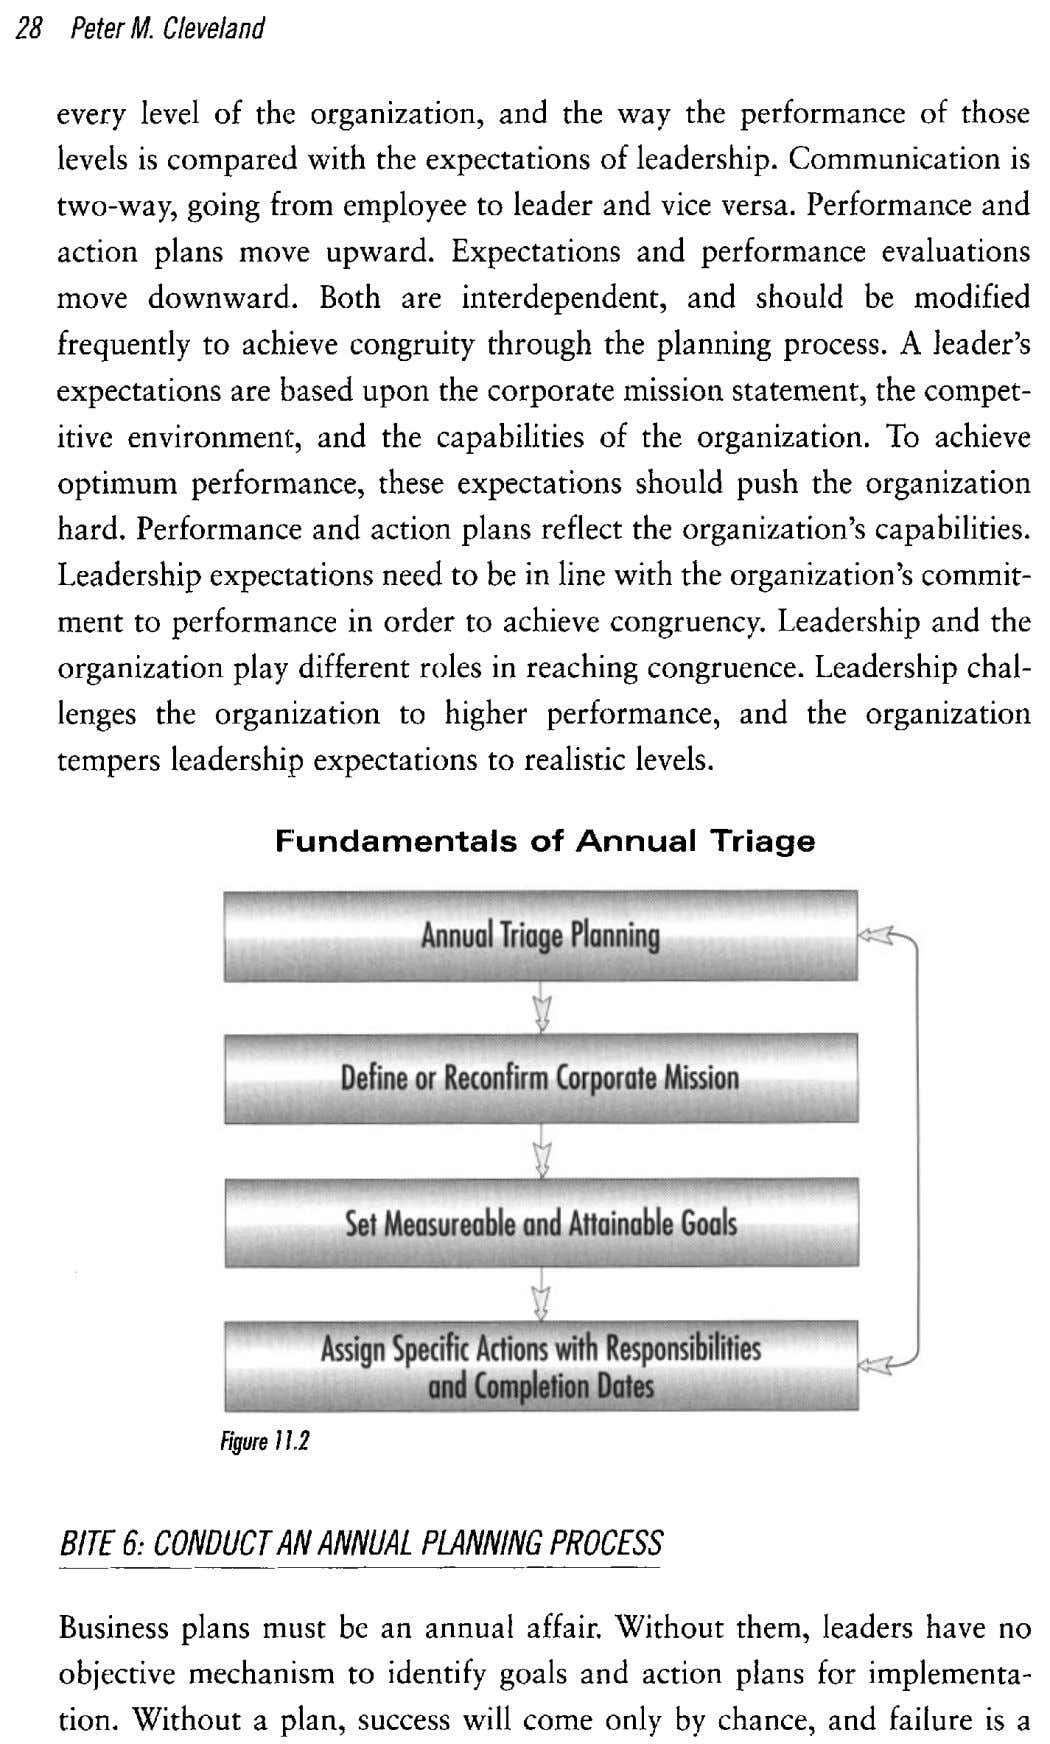 28 Peter M. Cleveland every level of the organization, and the way the performance of